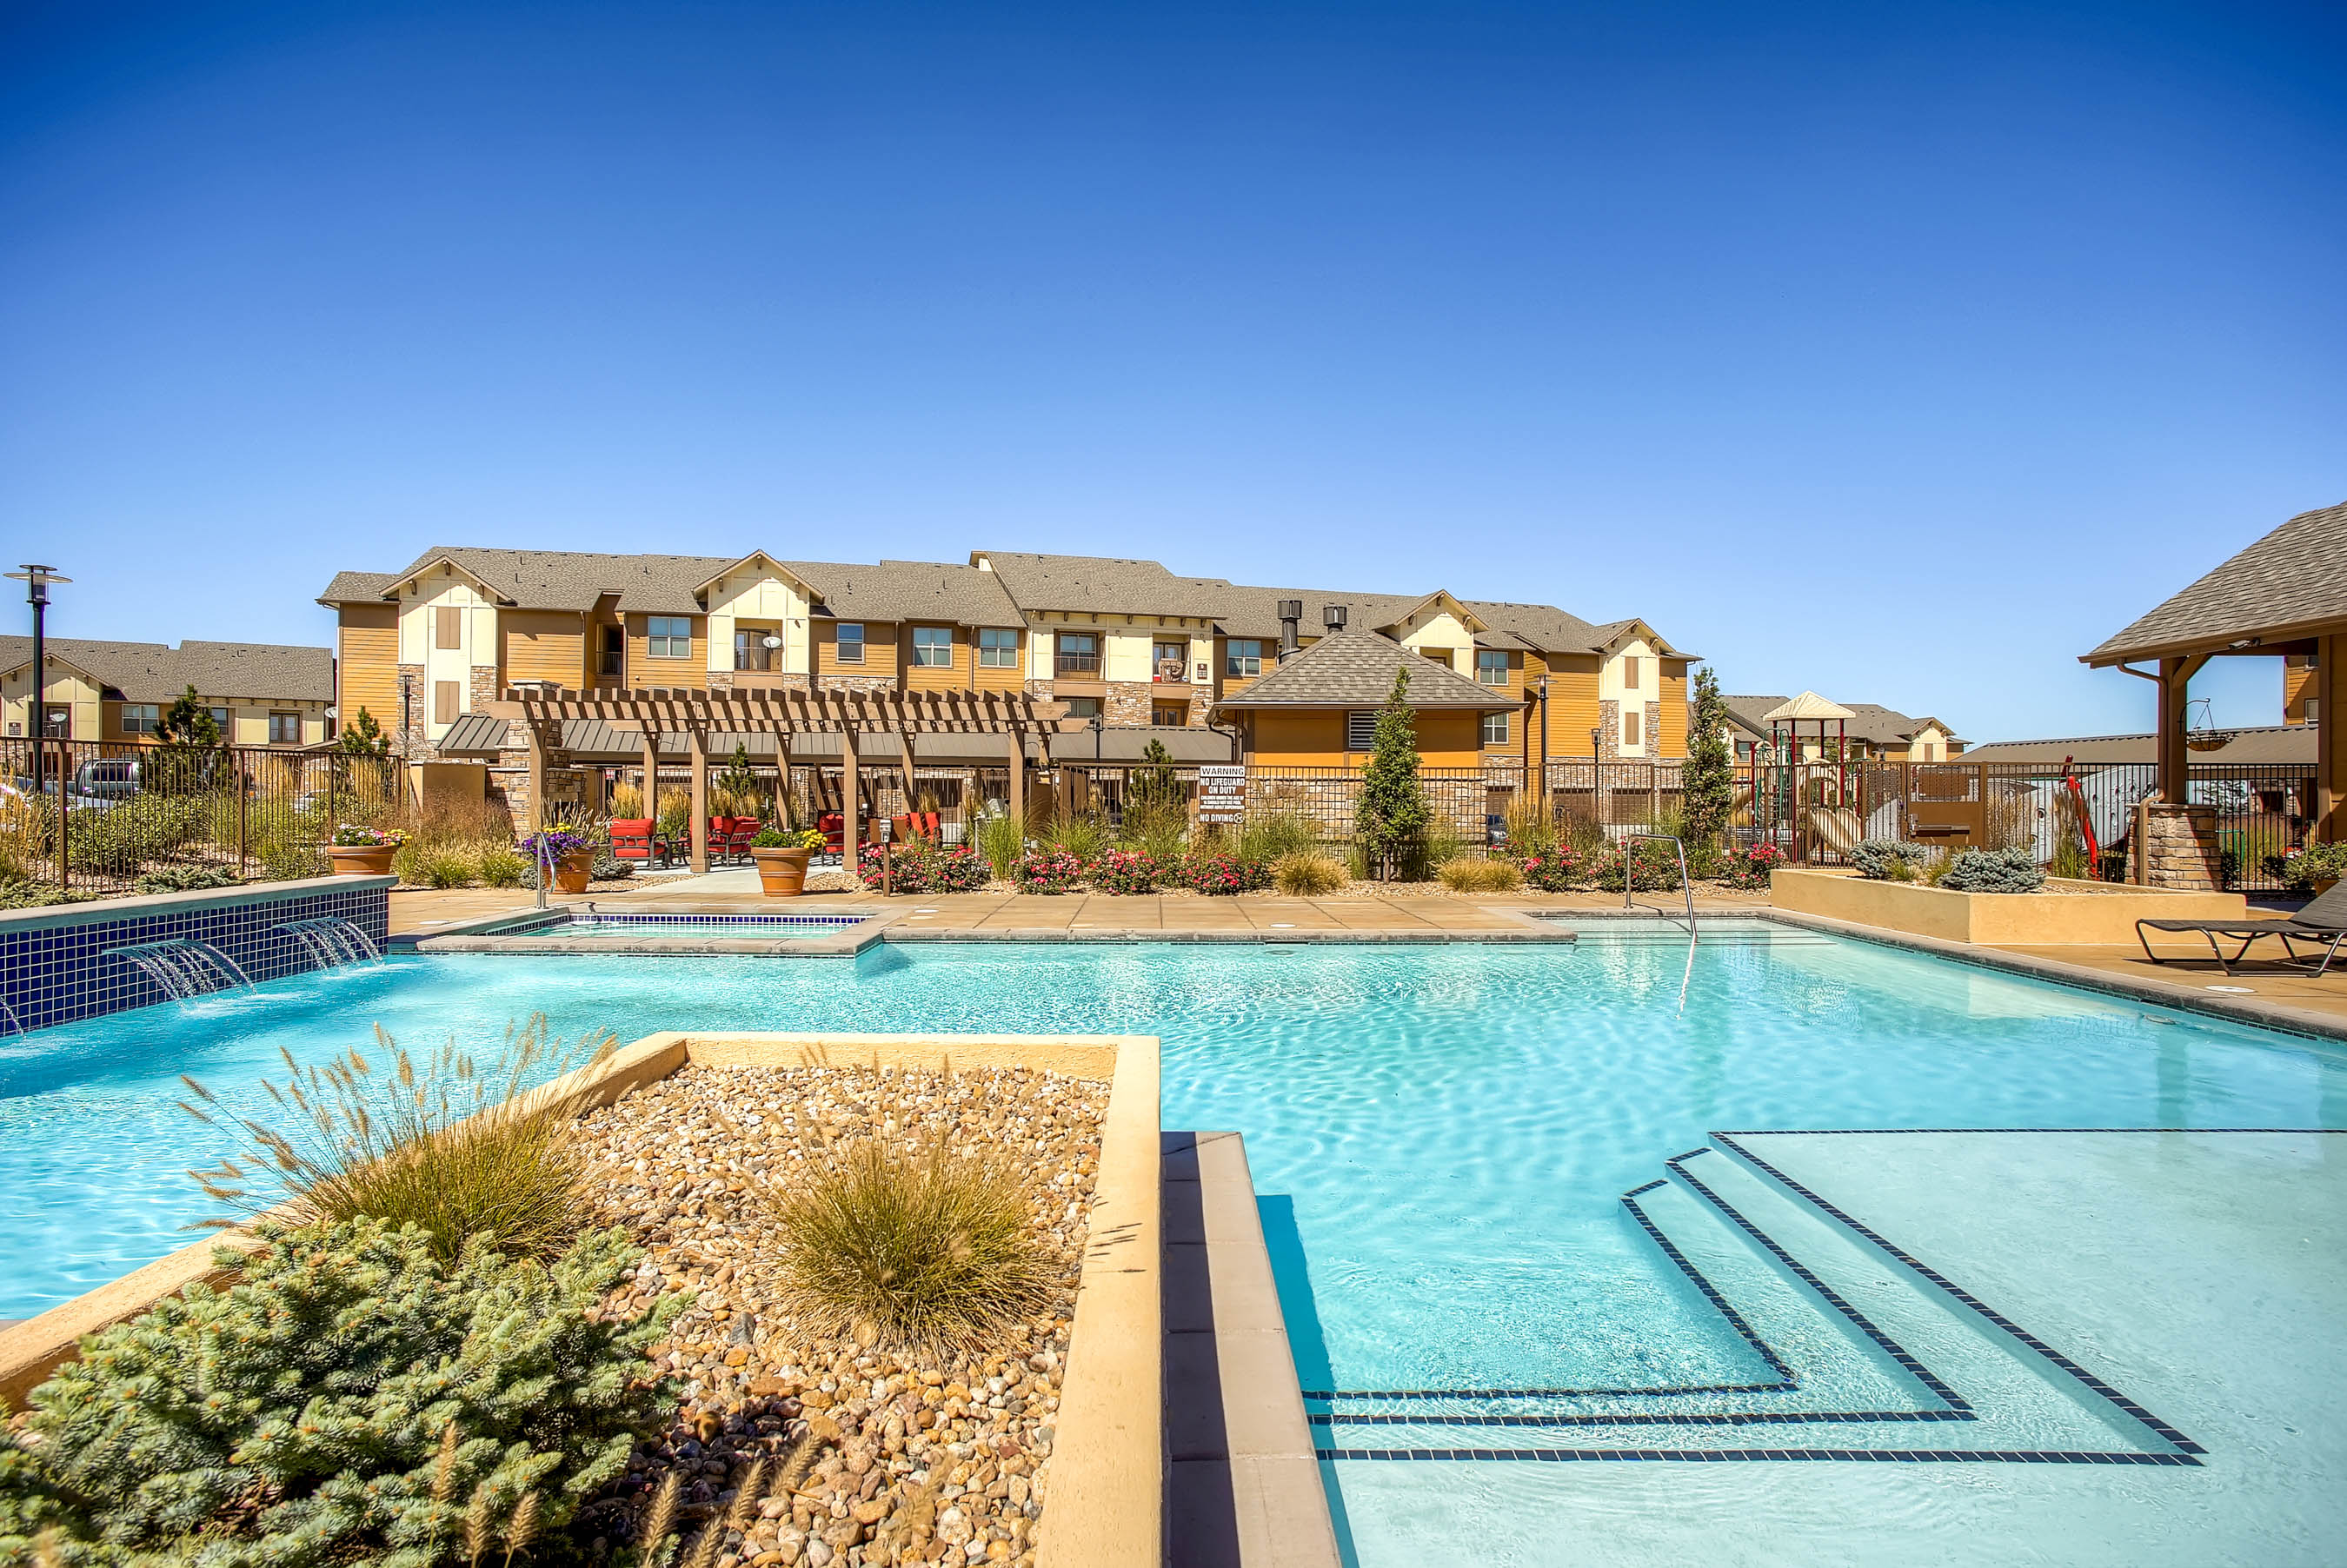 CBRE Completes $41.8M Sale of Highpointe Park Apartments in Thornton